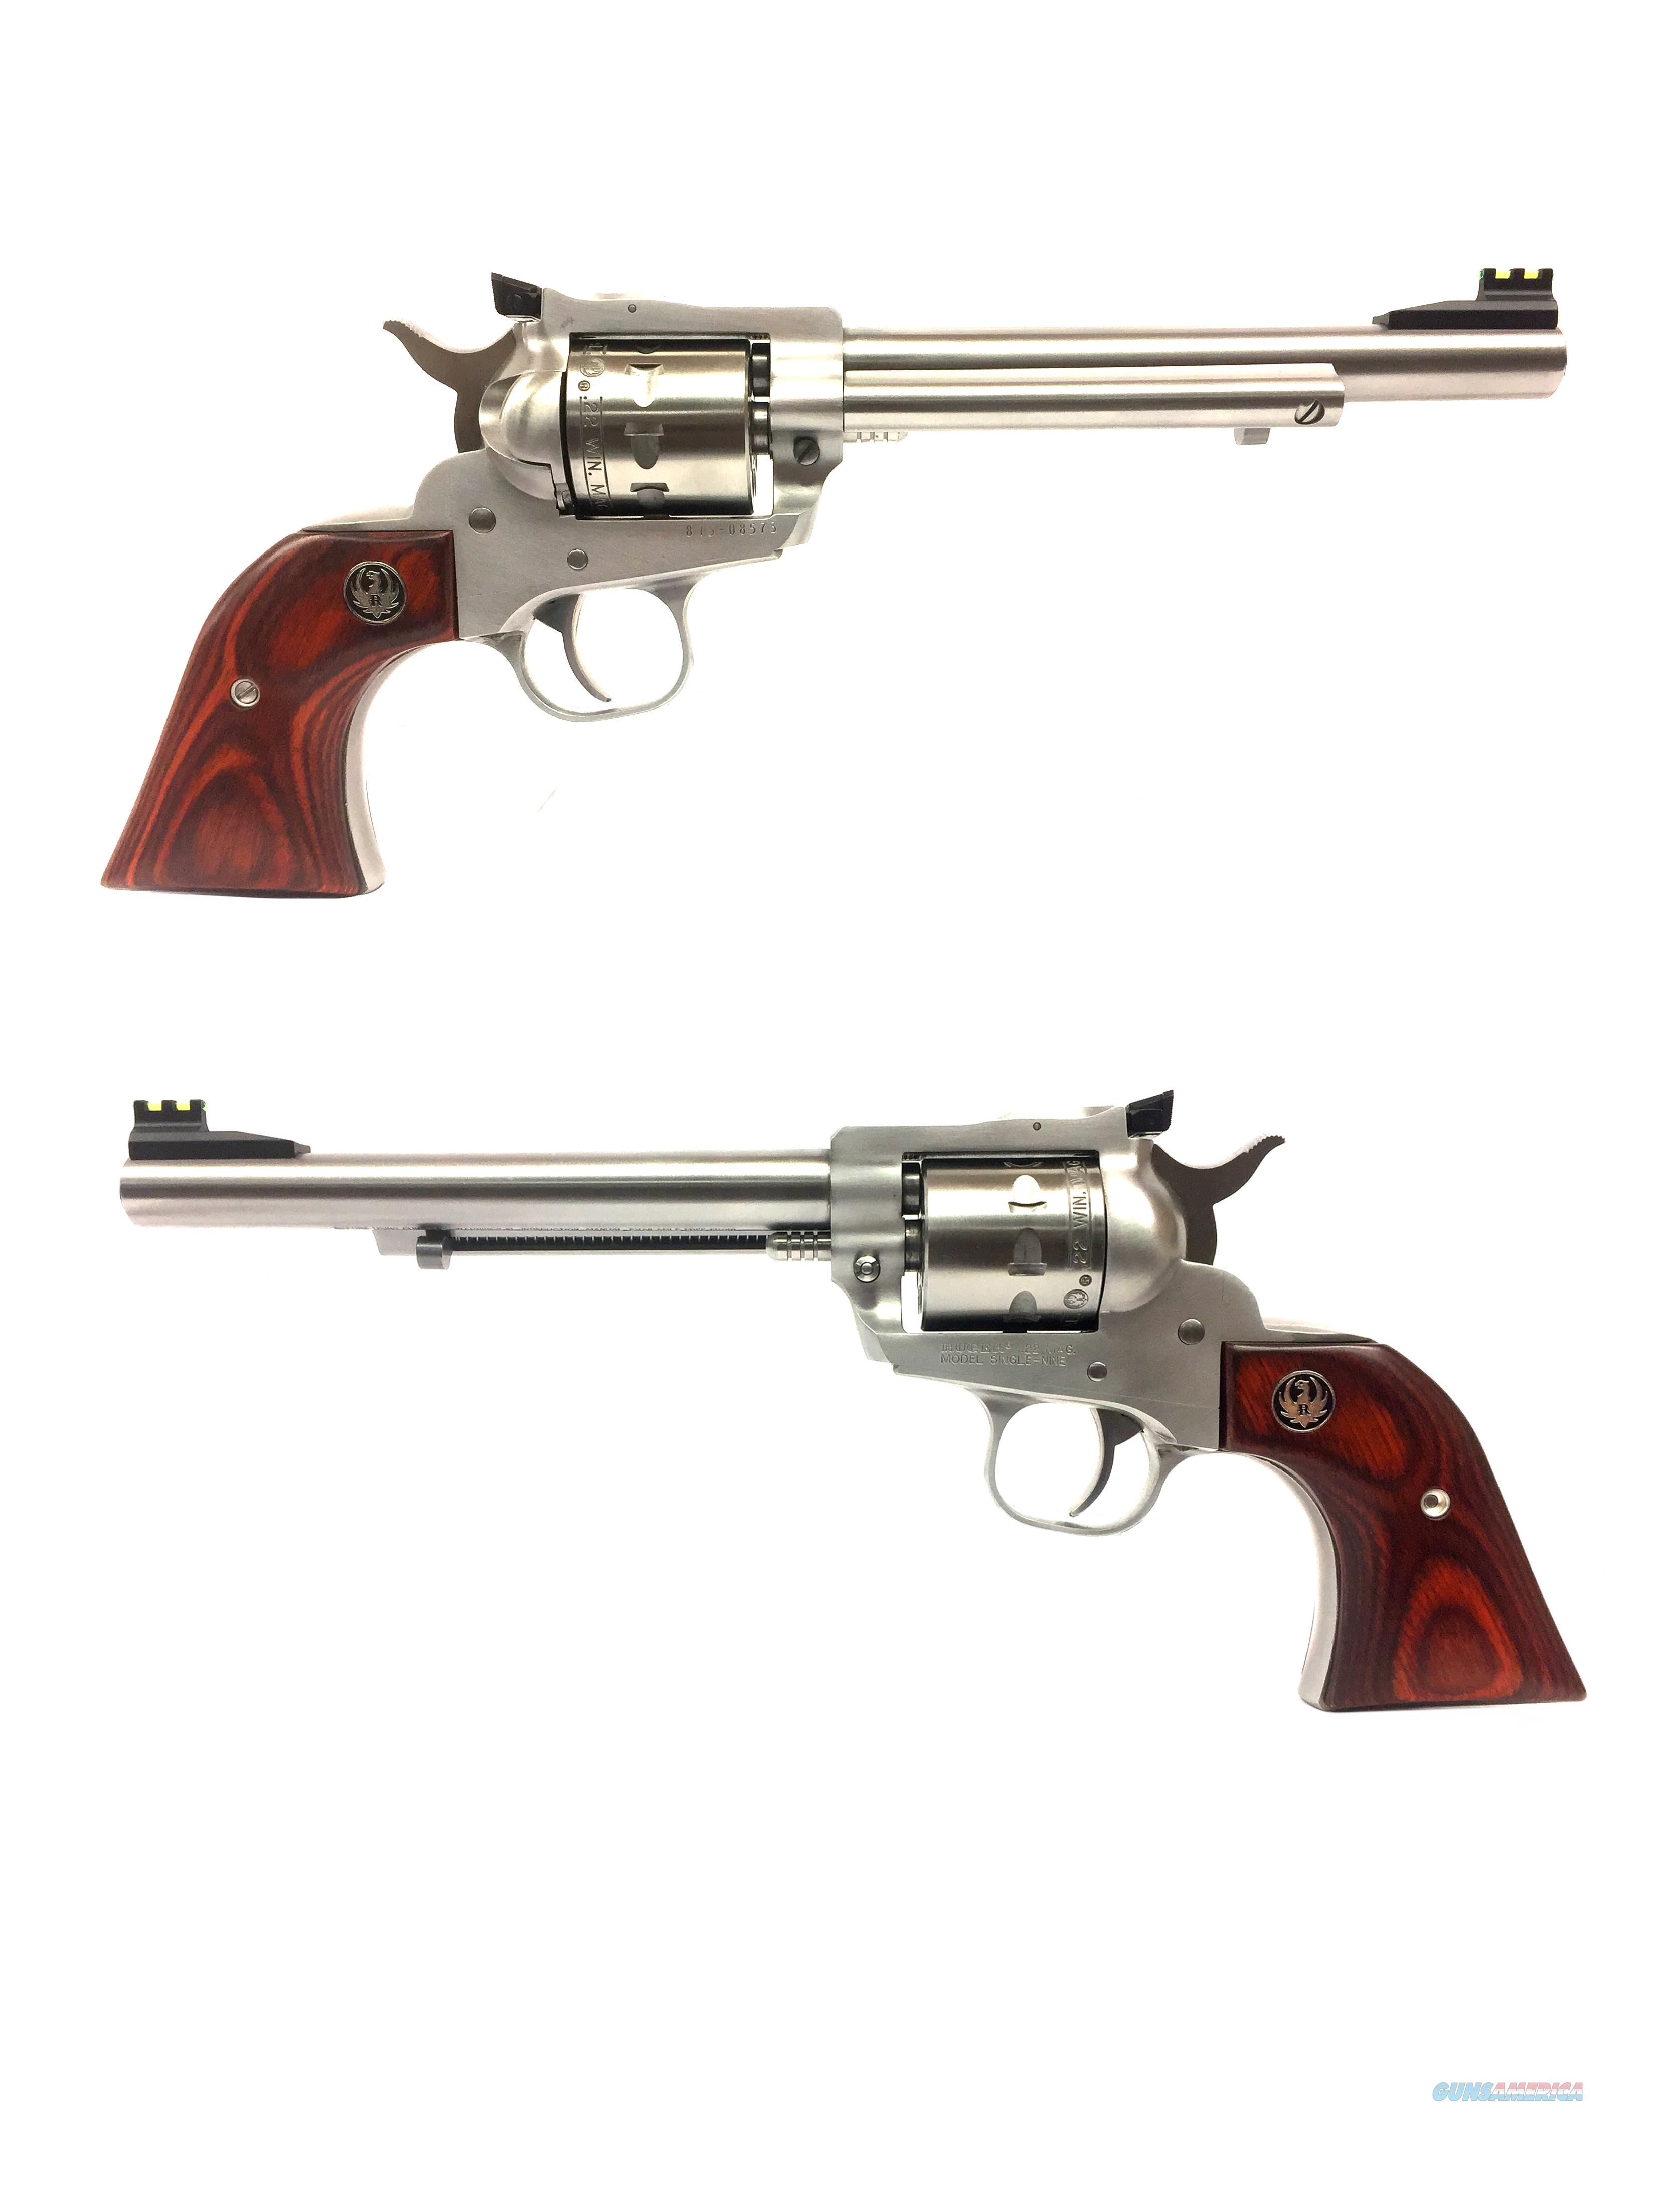 Ruger Single Nine .22 Magnum Single-Action Revolver  Guns > Pistols > Ruger Single Action Revolvers > Single Six Type